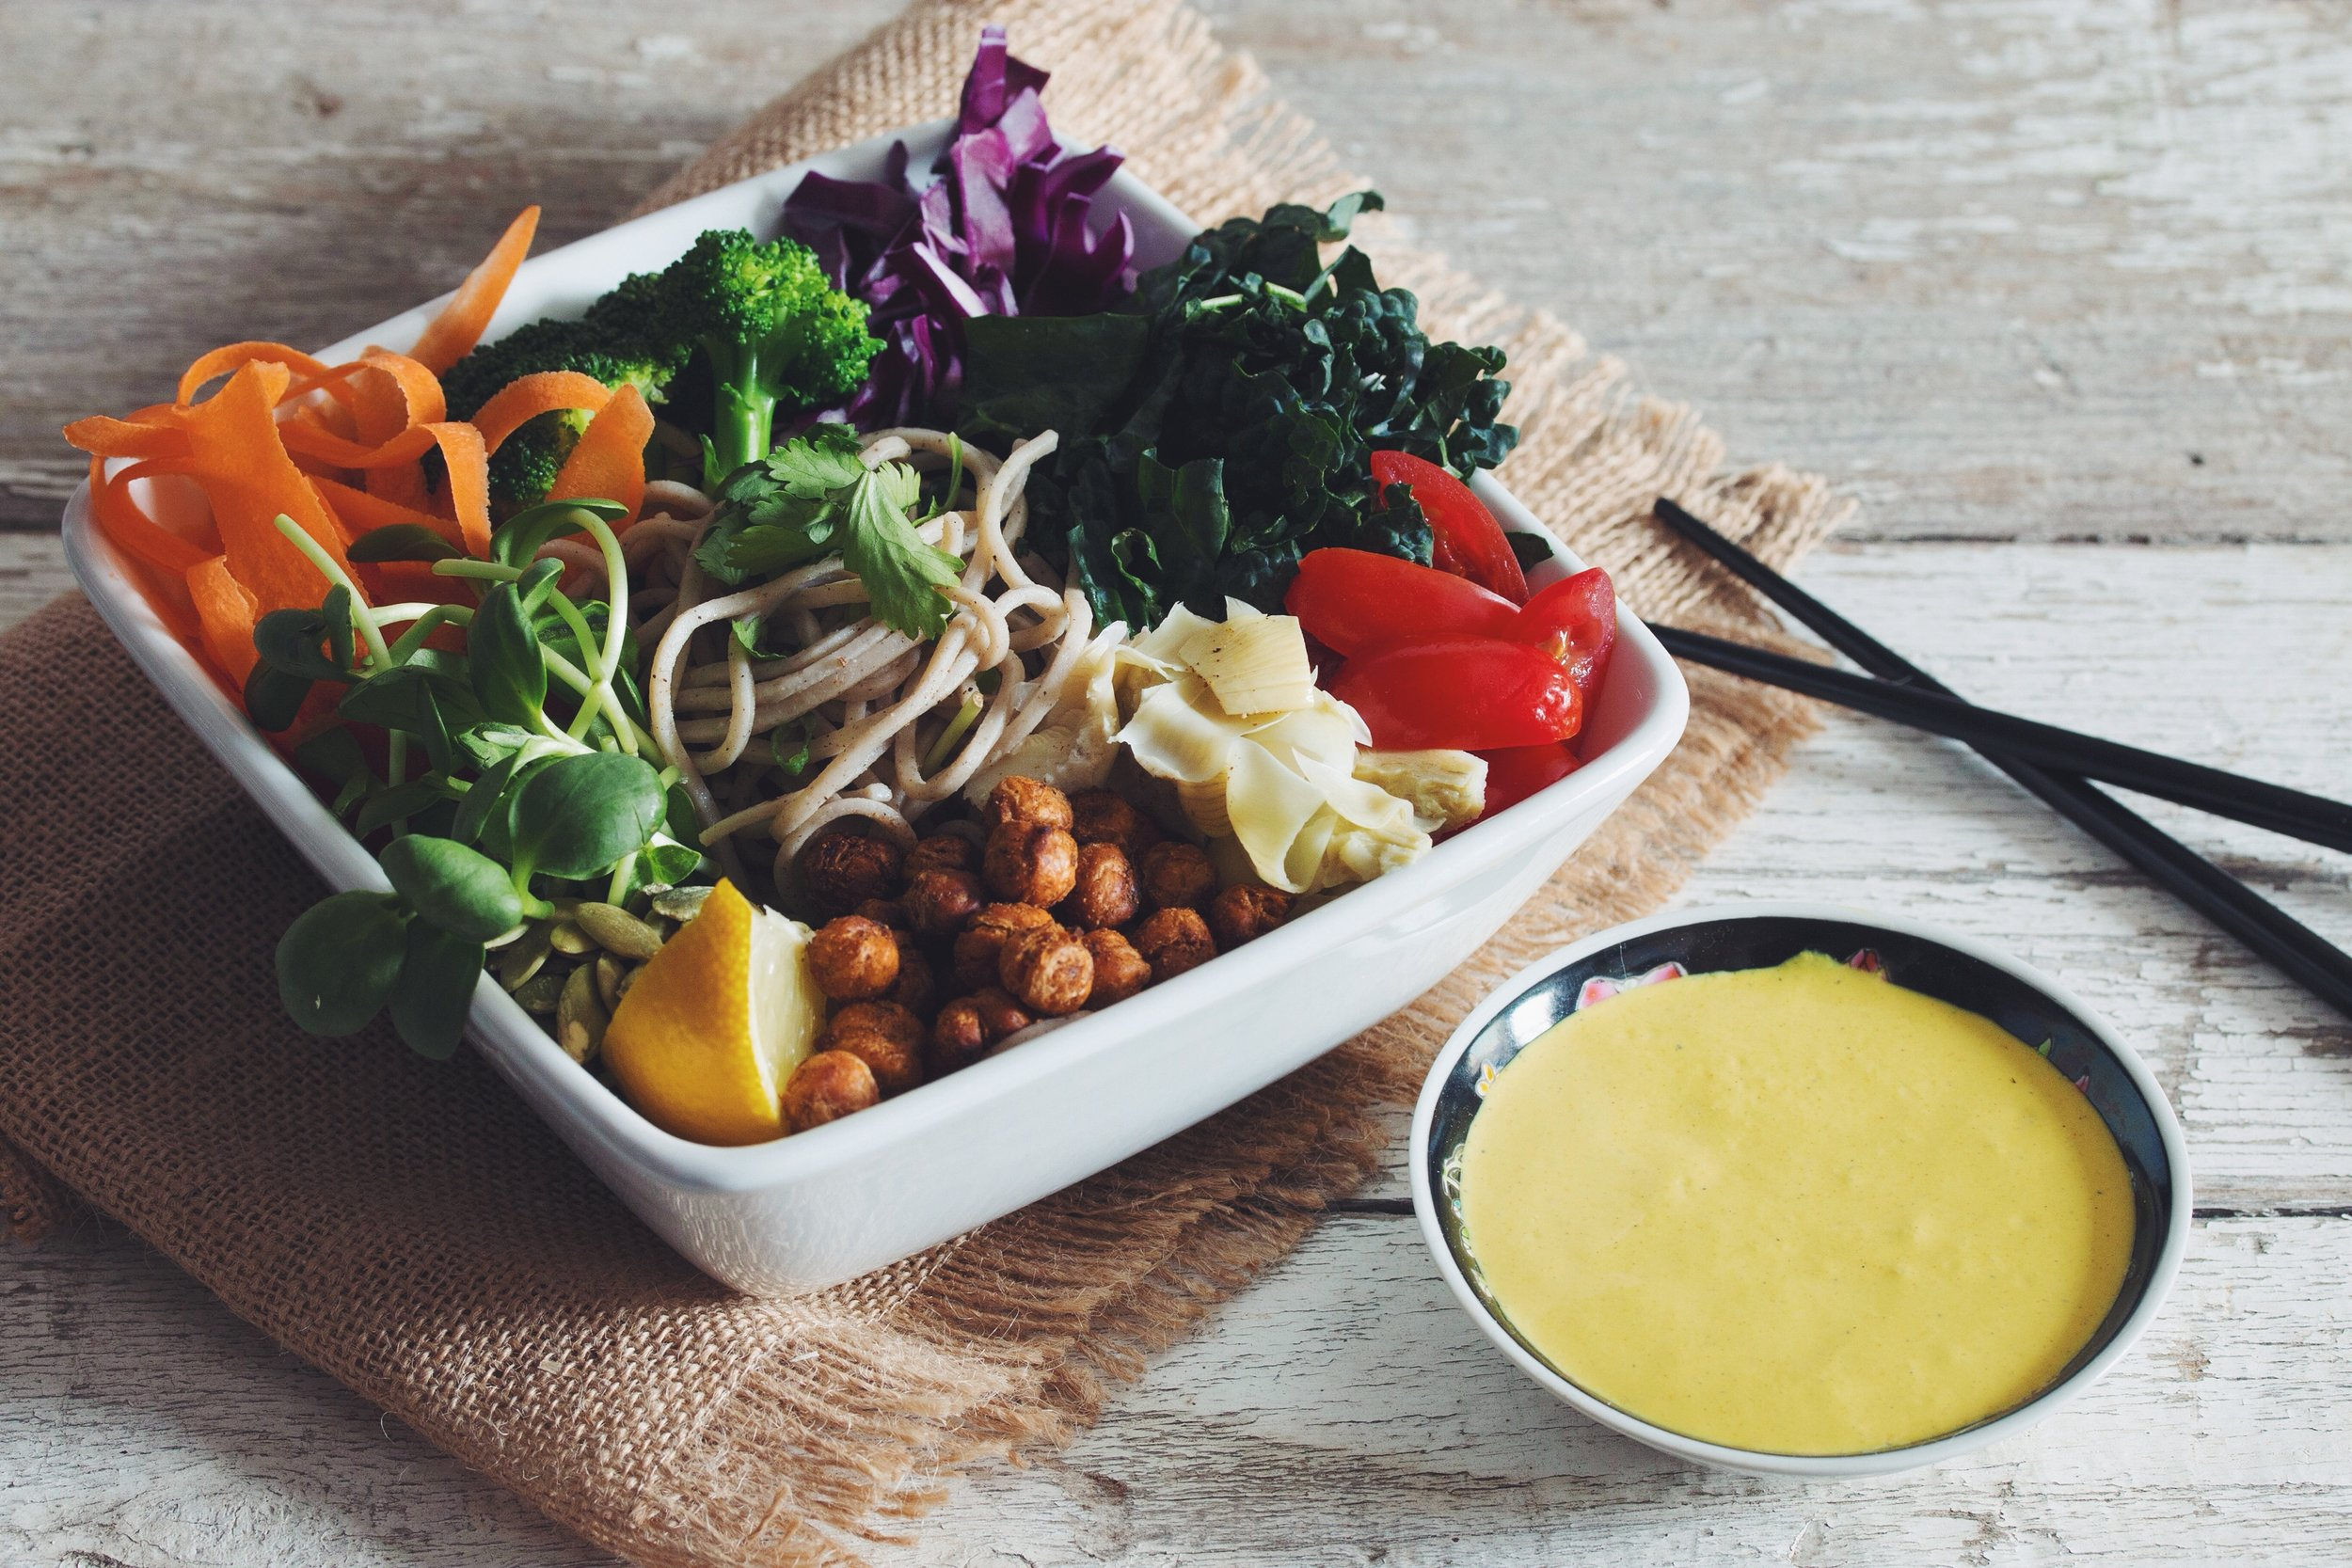 the buddha bowl - the golden miso tahini dressing really makes this bowl shine!